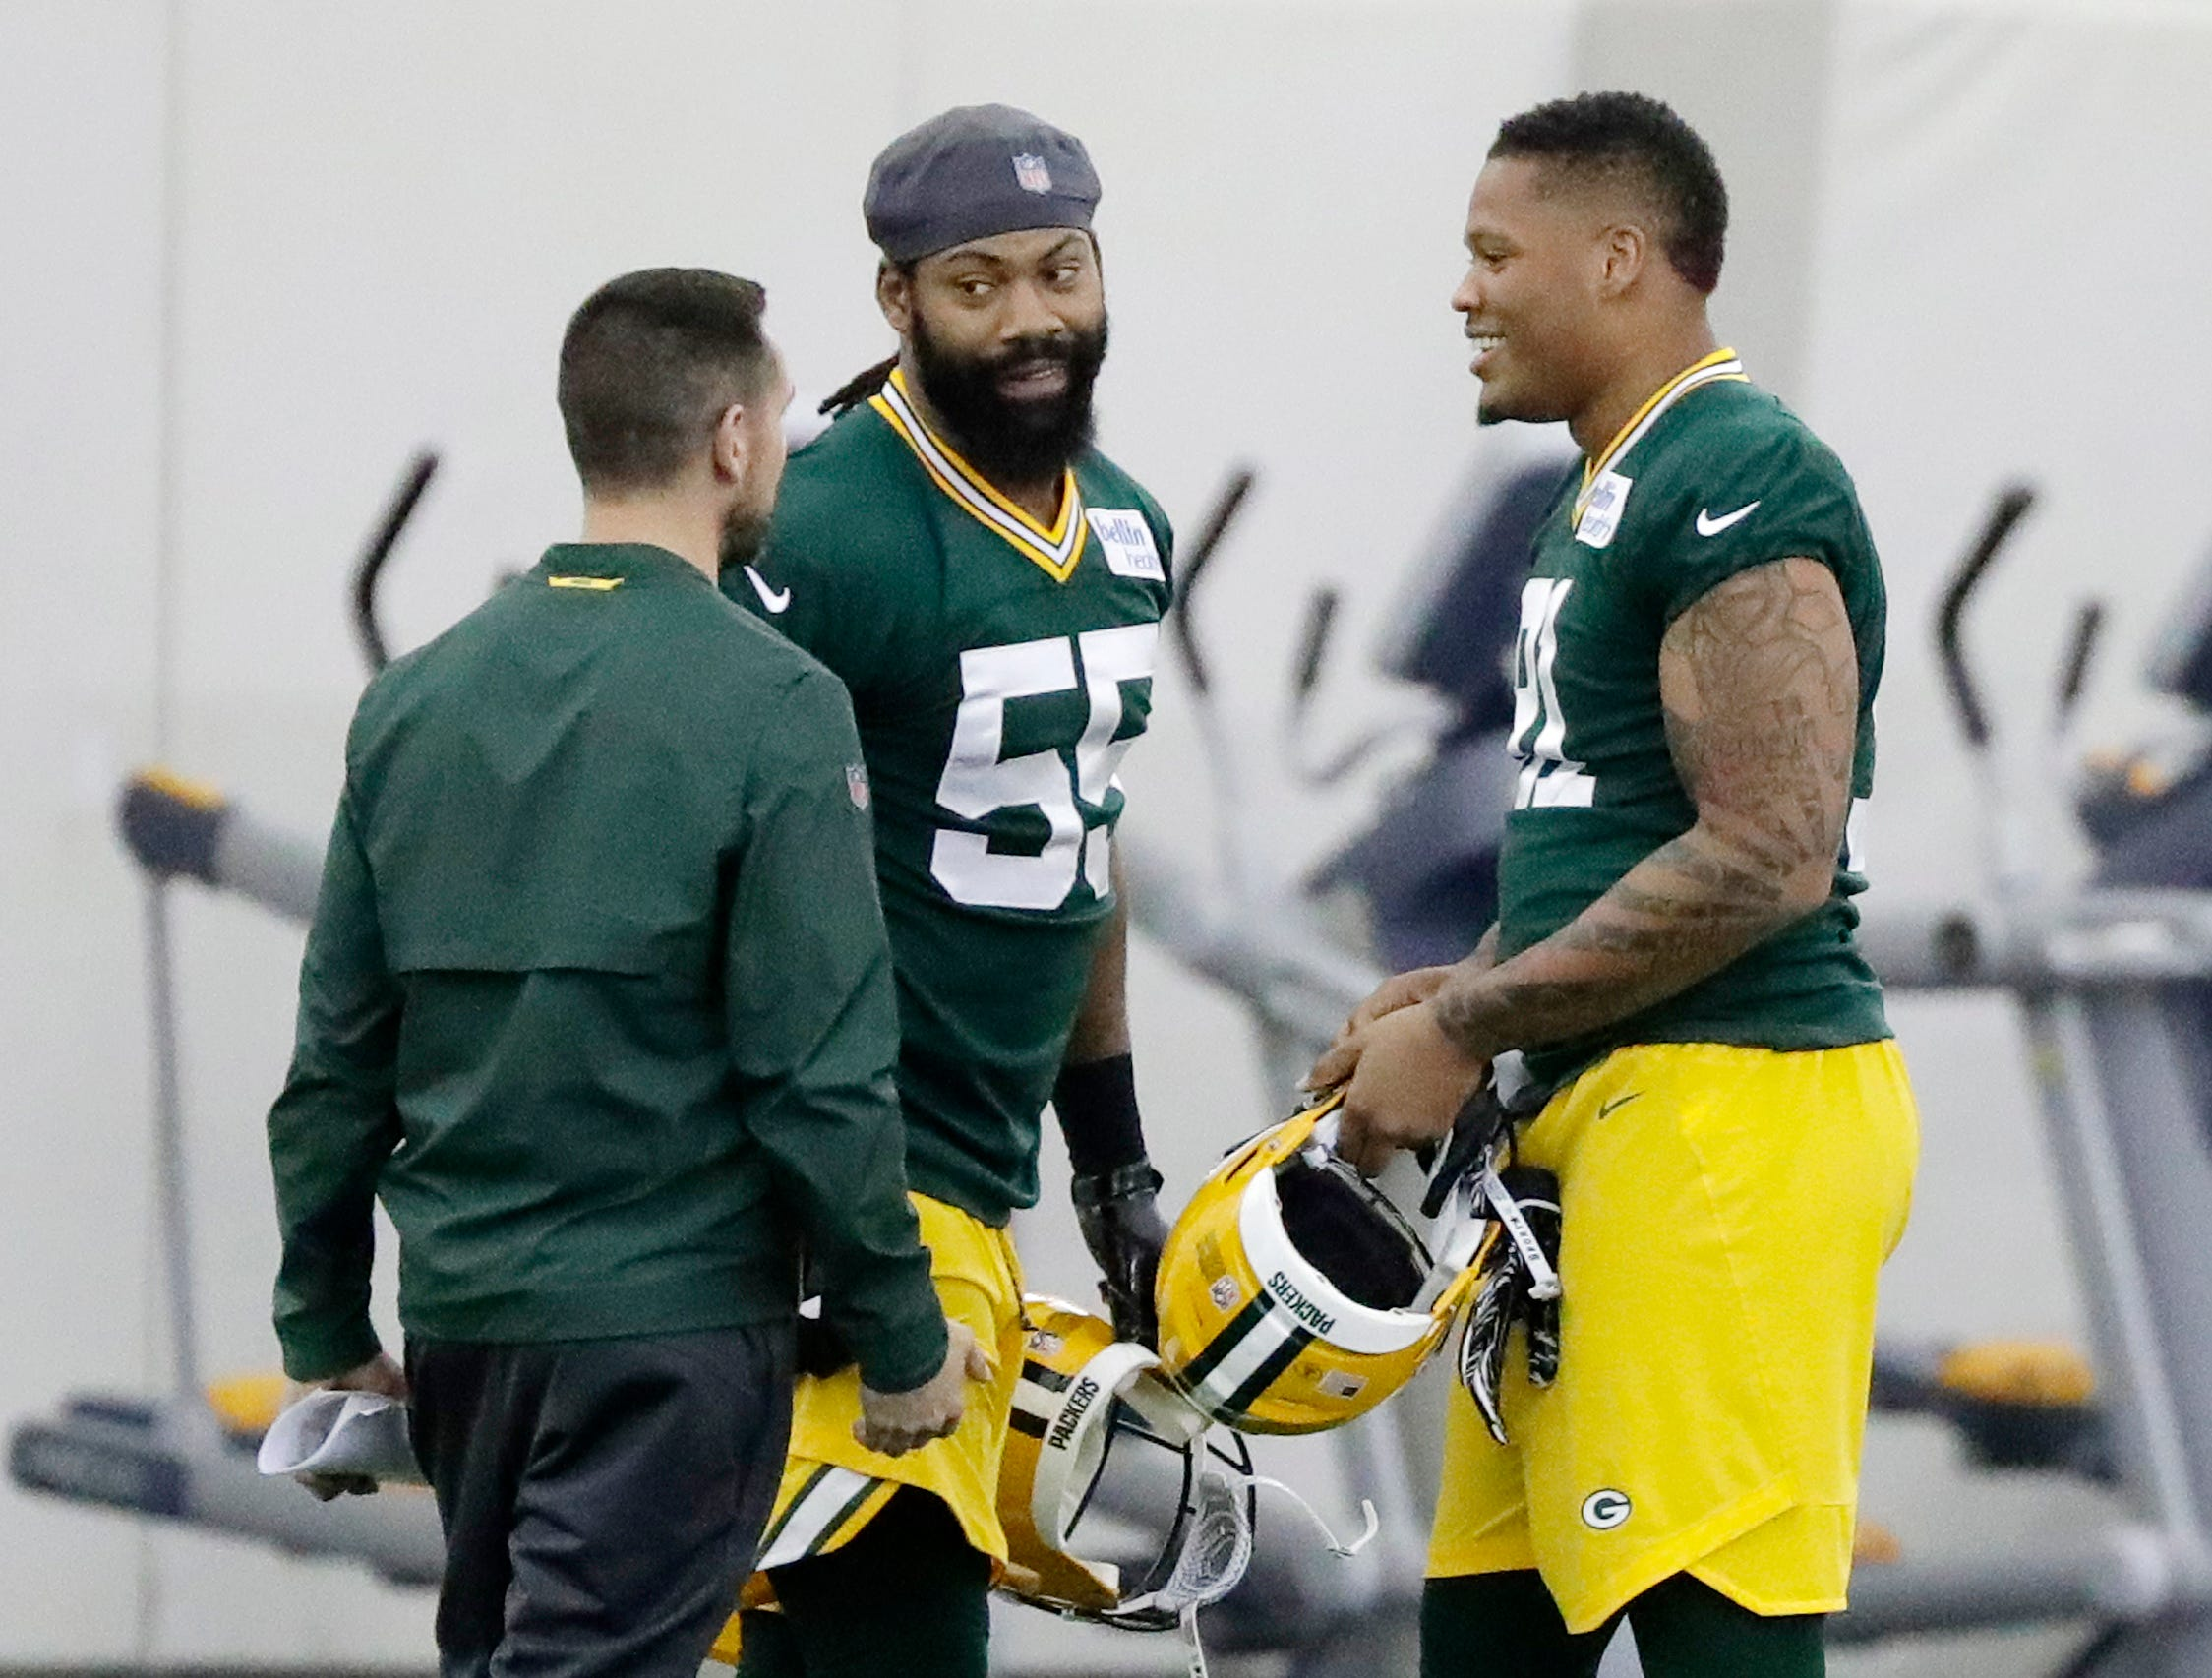 Green Bay Packers linebacker Za'Darius Smith (55) and linebacker Preston Smith (91) talk to head coach Matt LaFleur during a team practice at the Don Hutson Center on Wednesday, April 24, 2019 in Ashwaubenon, Wis.